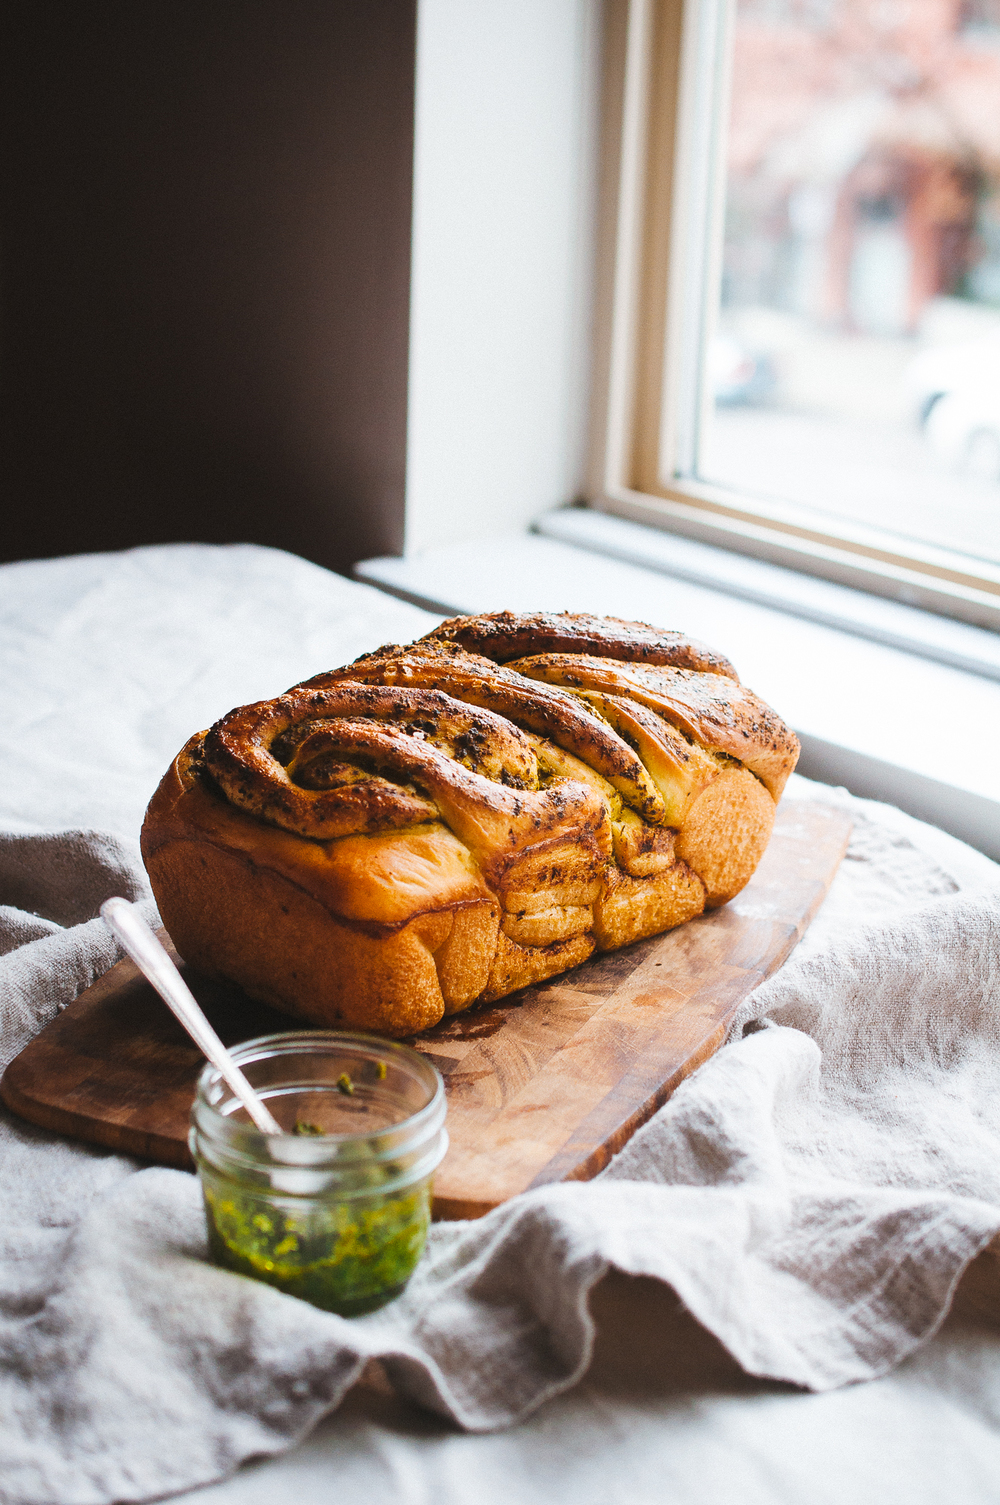 pesto bread 9.jpg